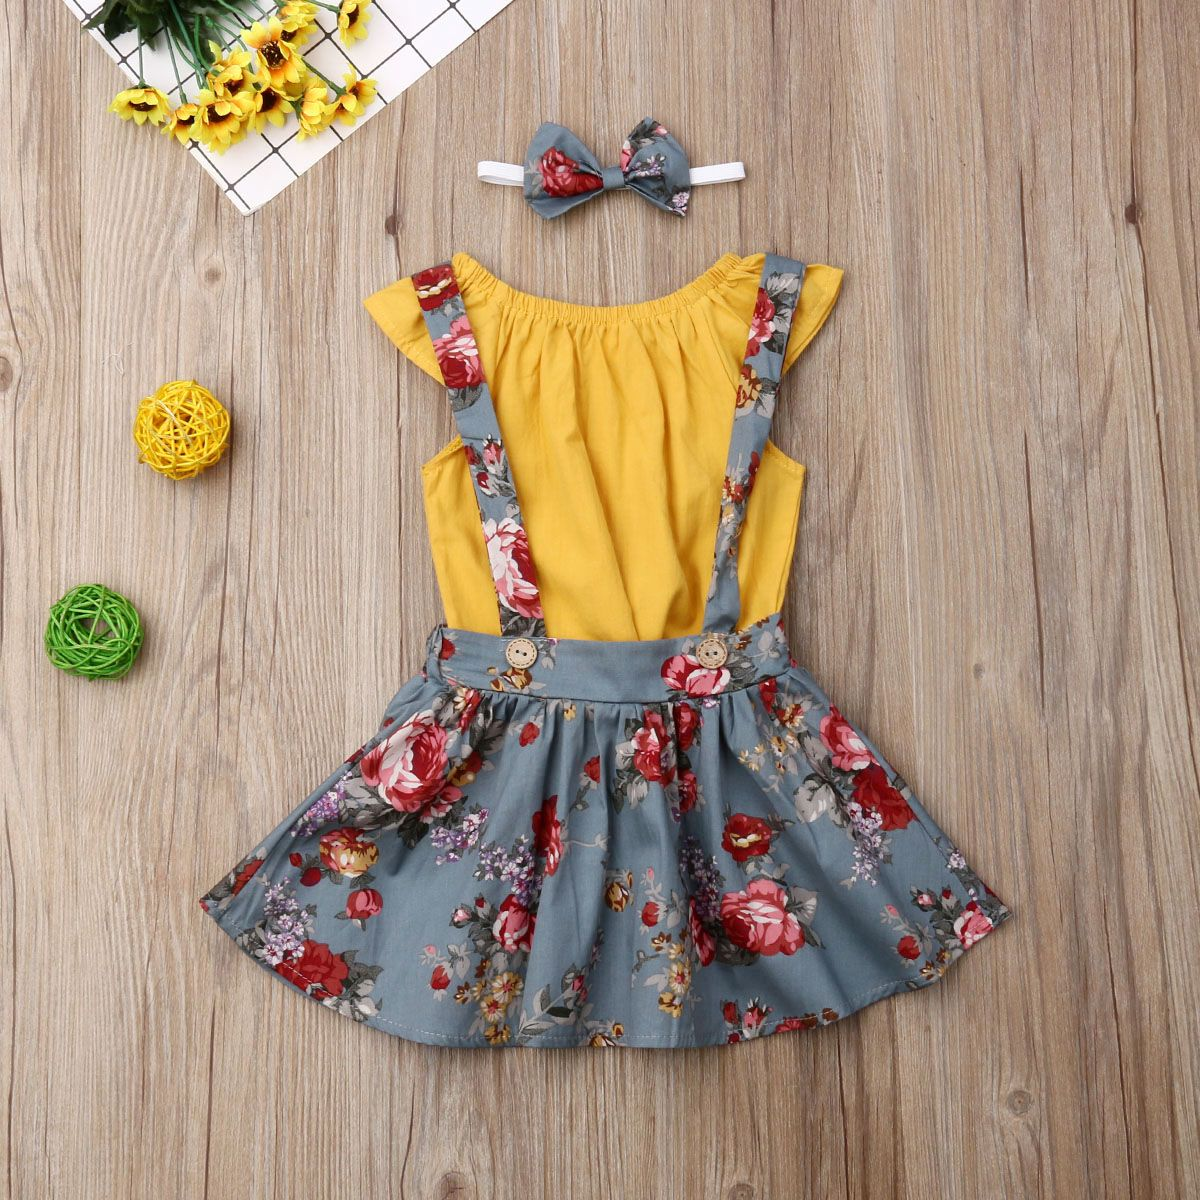 T-Shirt Strap Dress Kids Baby Girls Floral Suspender Skirt Bow 2PC Sets Outfits